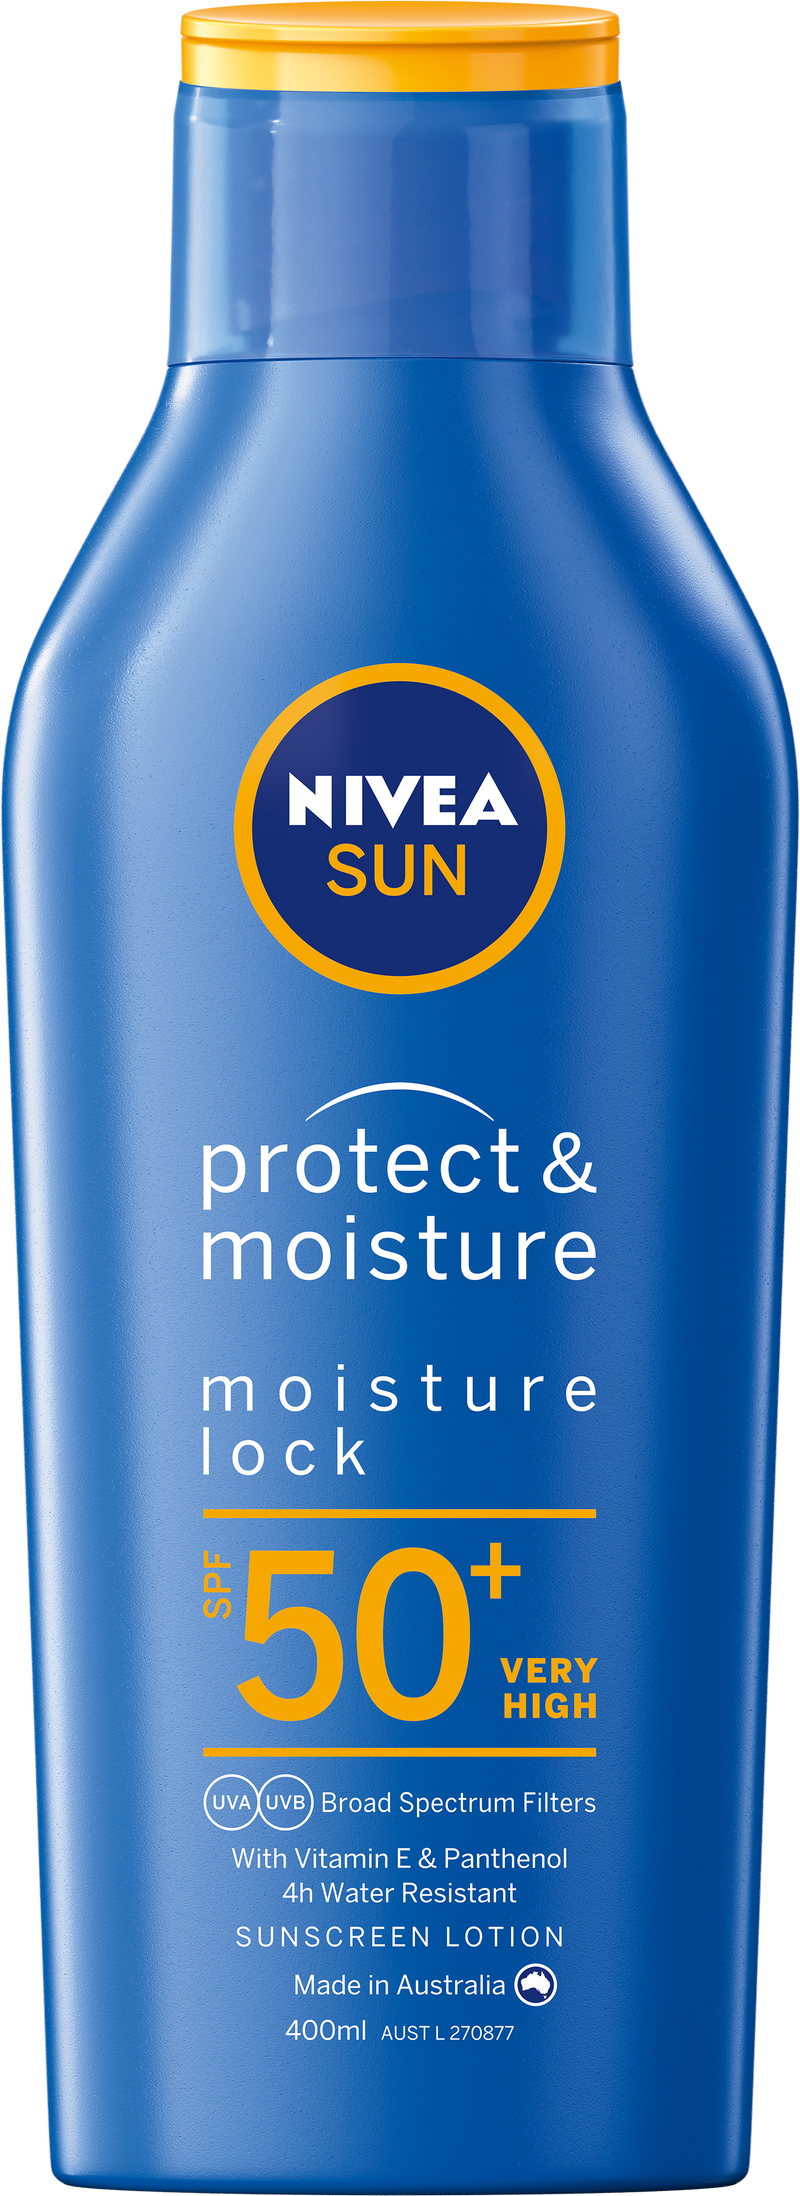 Nivea Sun Protect & Moisture Moisturising Sunscreen Lotion SPF 50+ 400ml